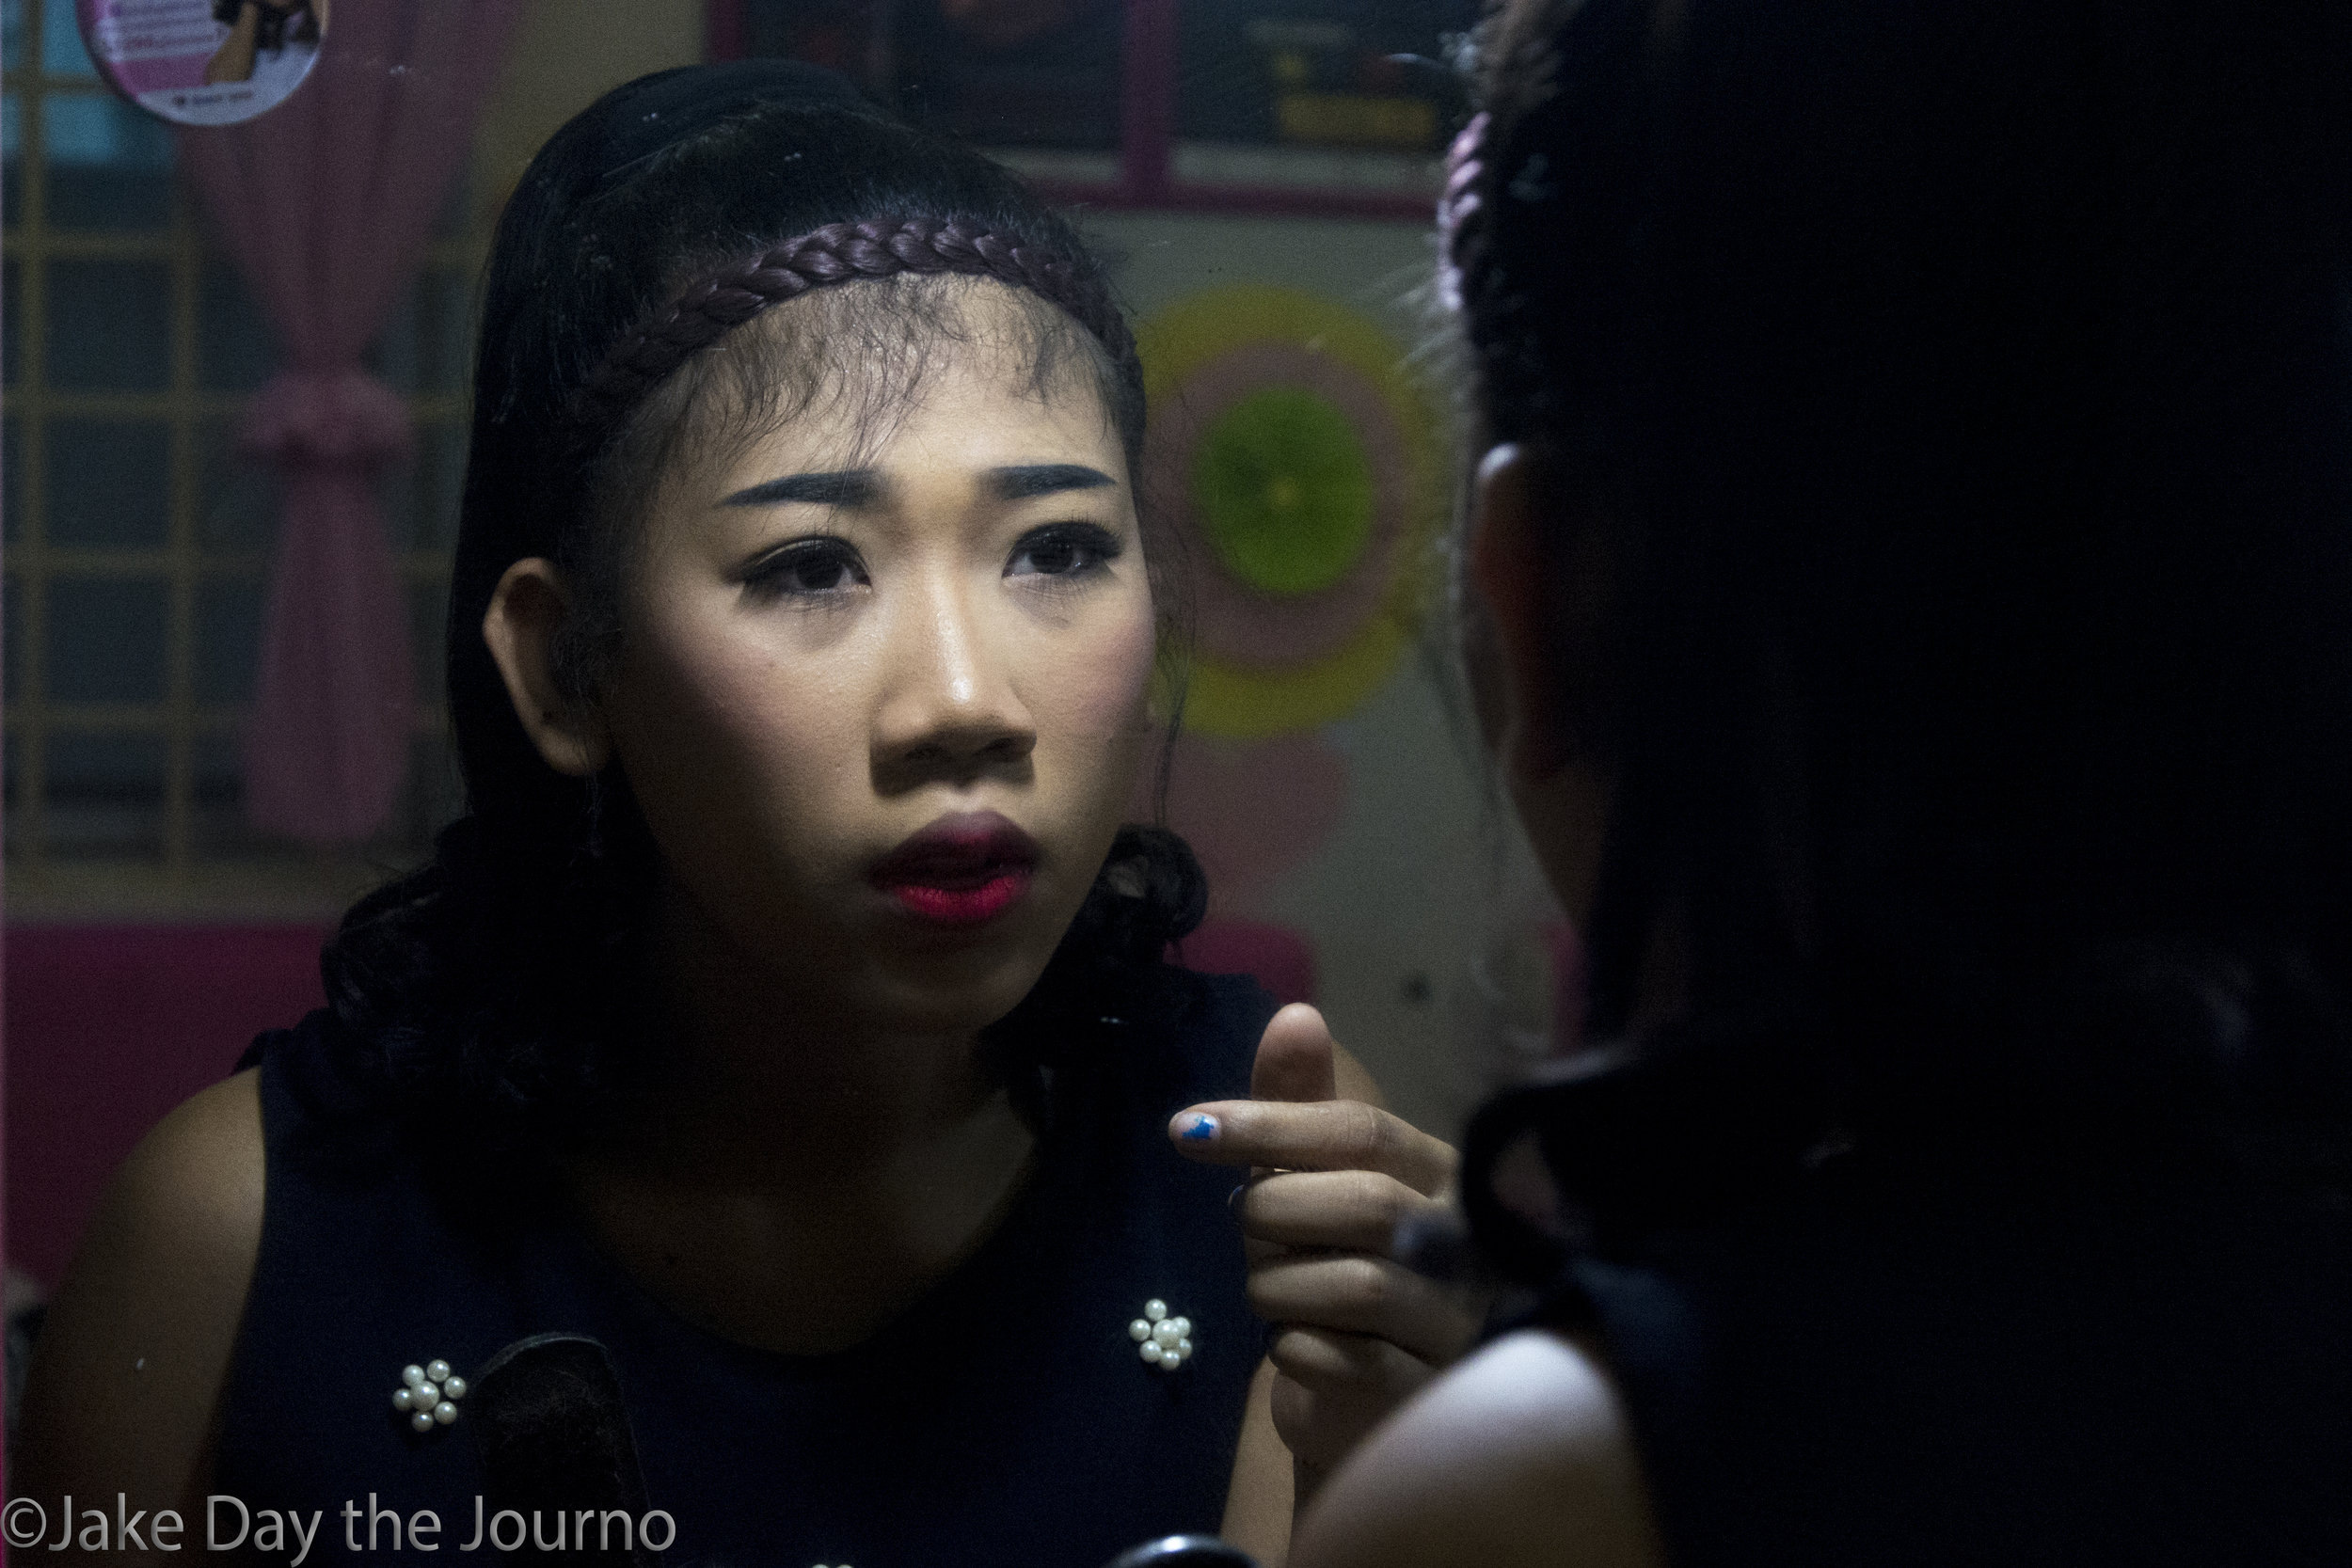 An entertainment worker applies makeup at the SMARTgirl club in Siem Reap on 23/01/18 by Jake Day.